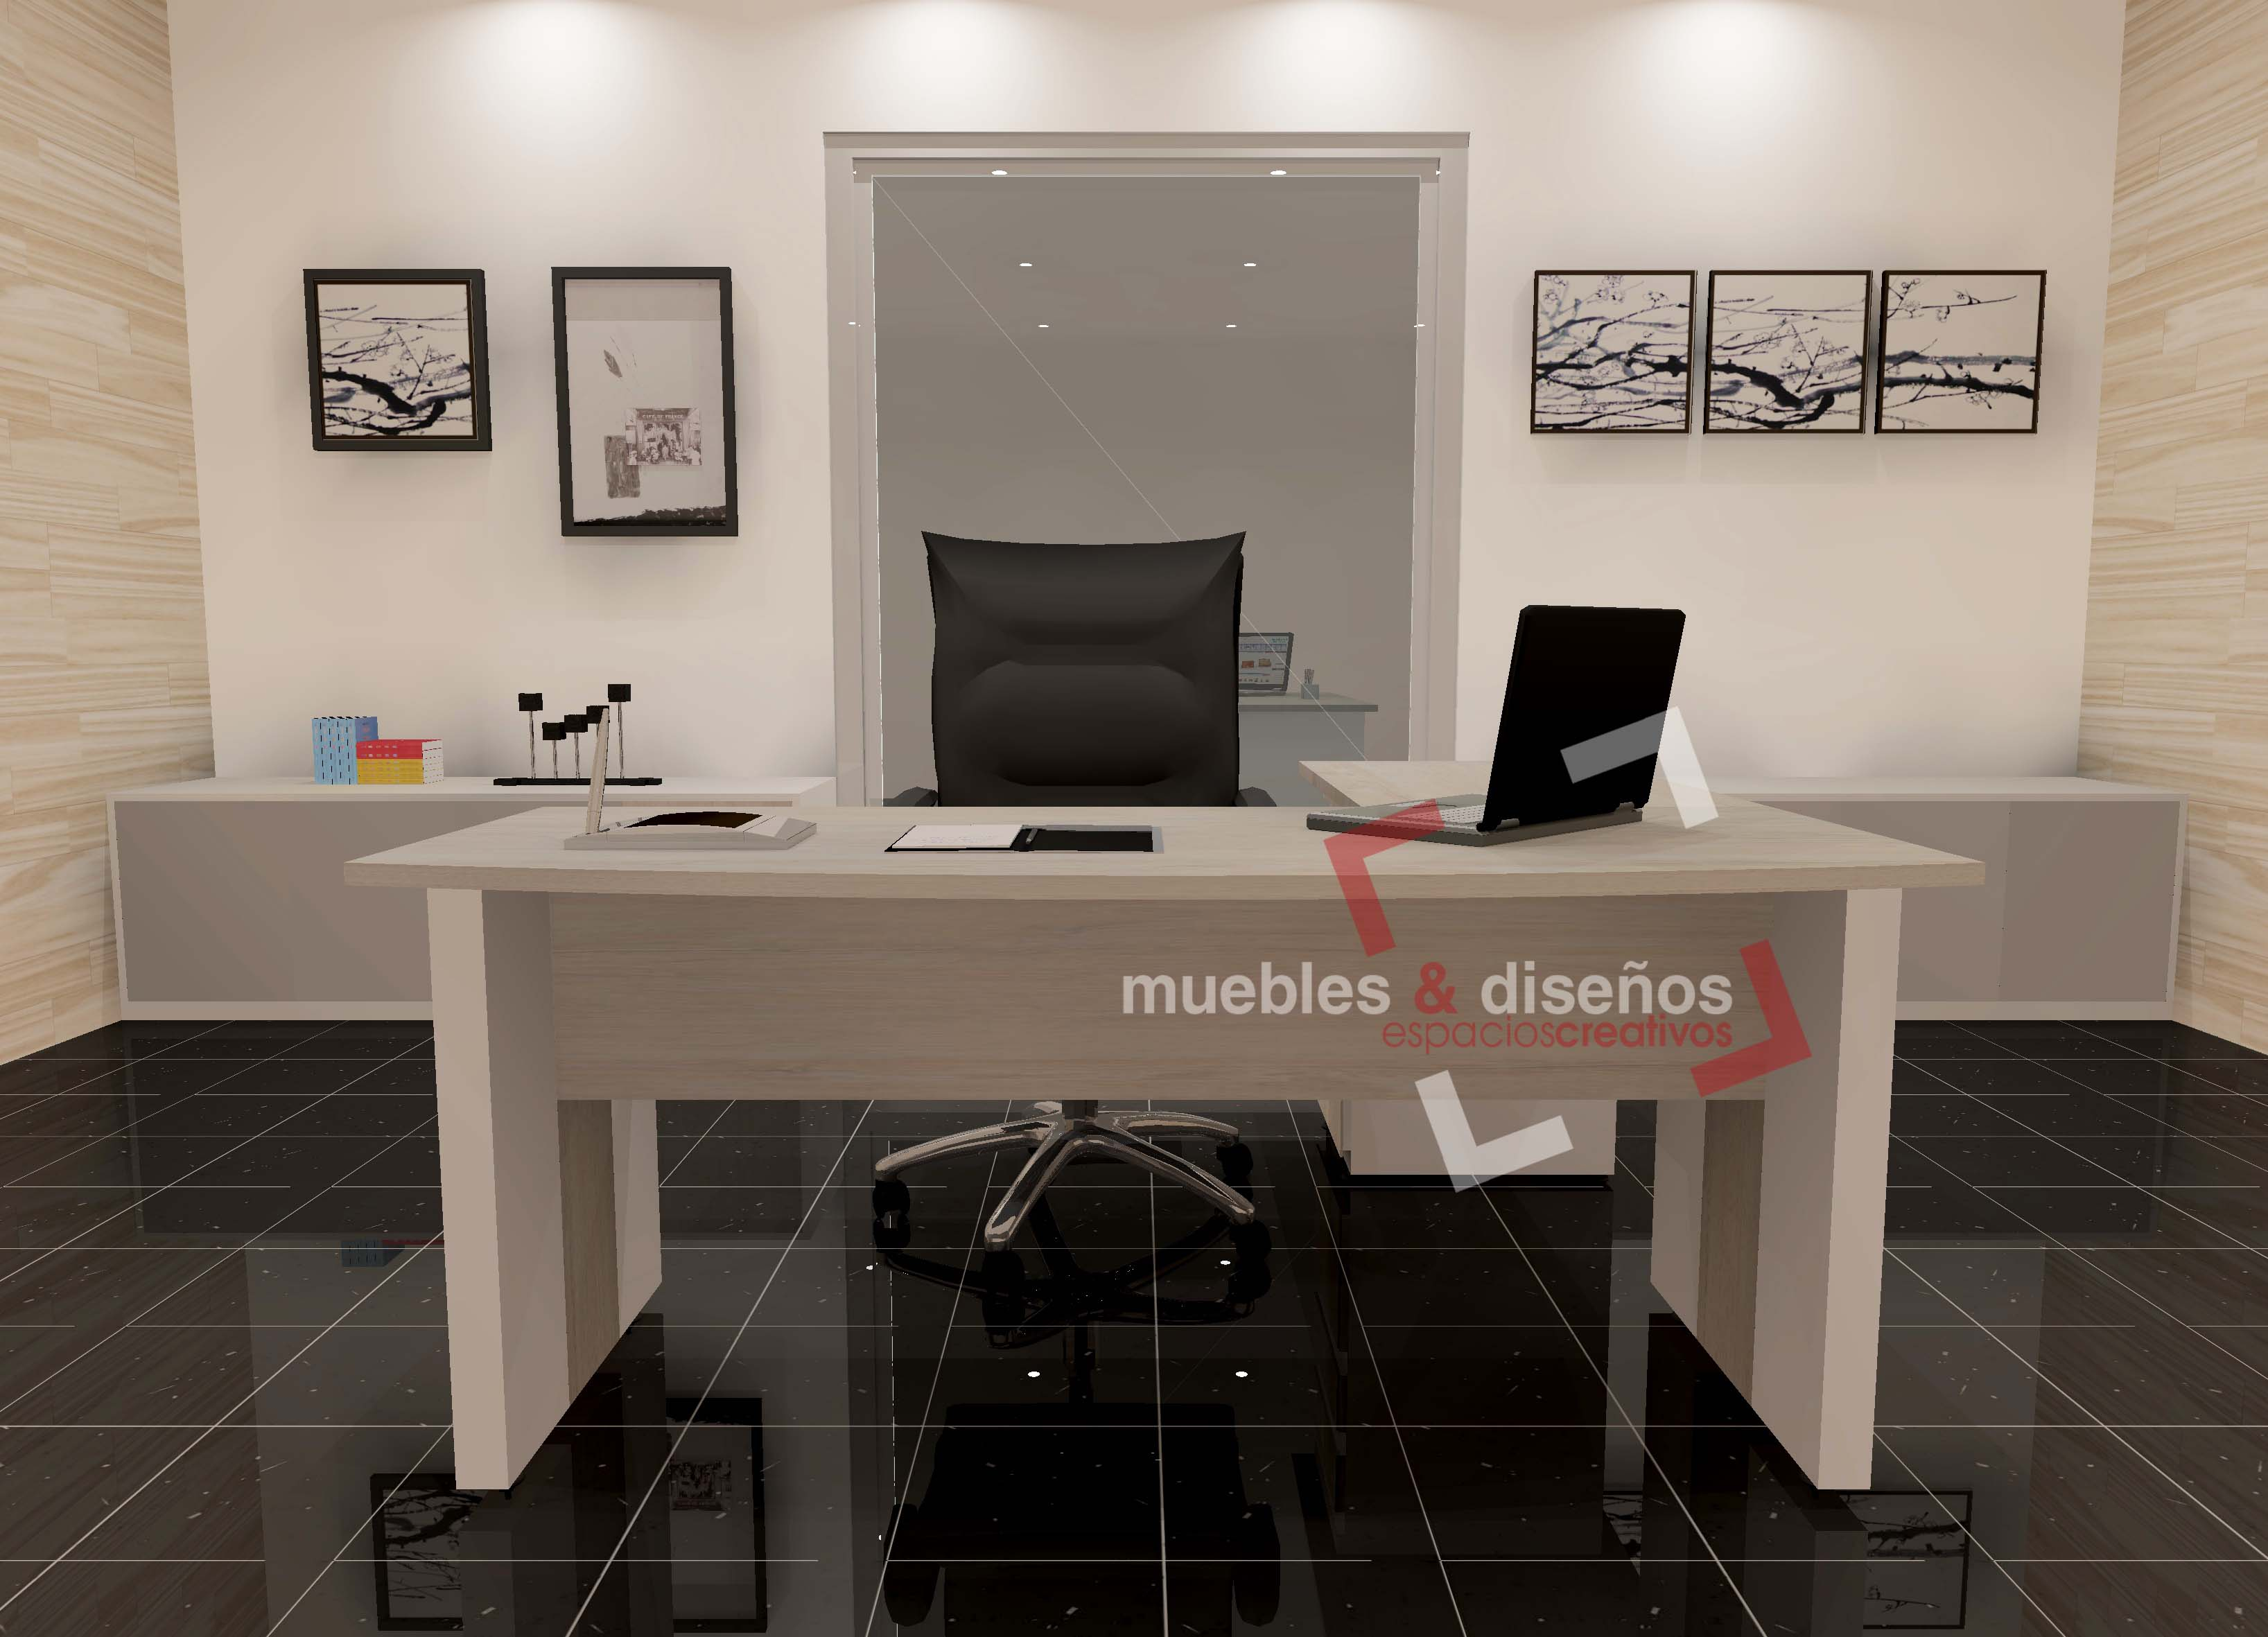 Projects 2 Muebles Y Dise Os Part 4 # Muebles Y Disenos